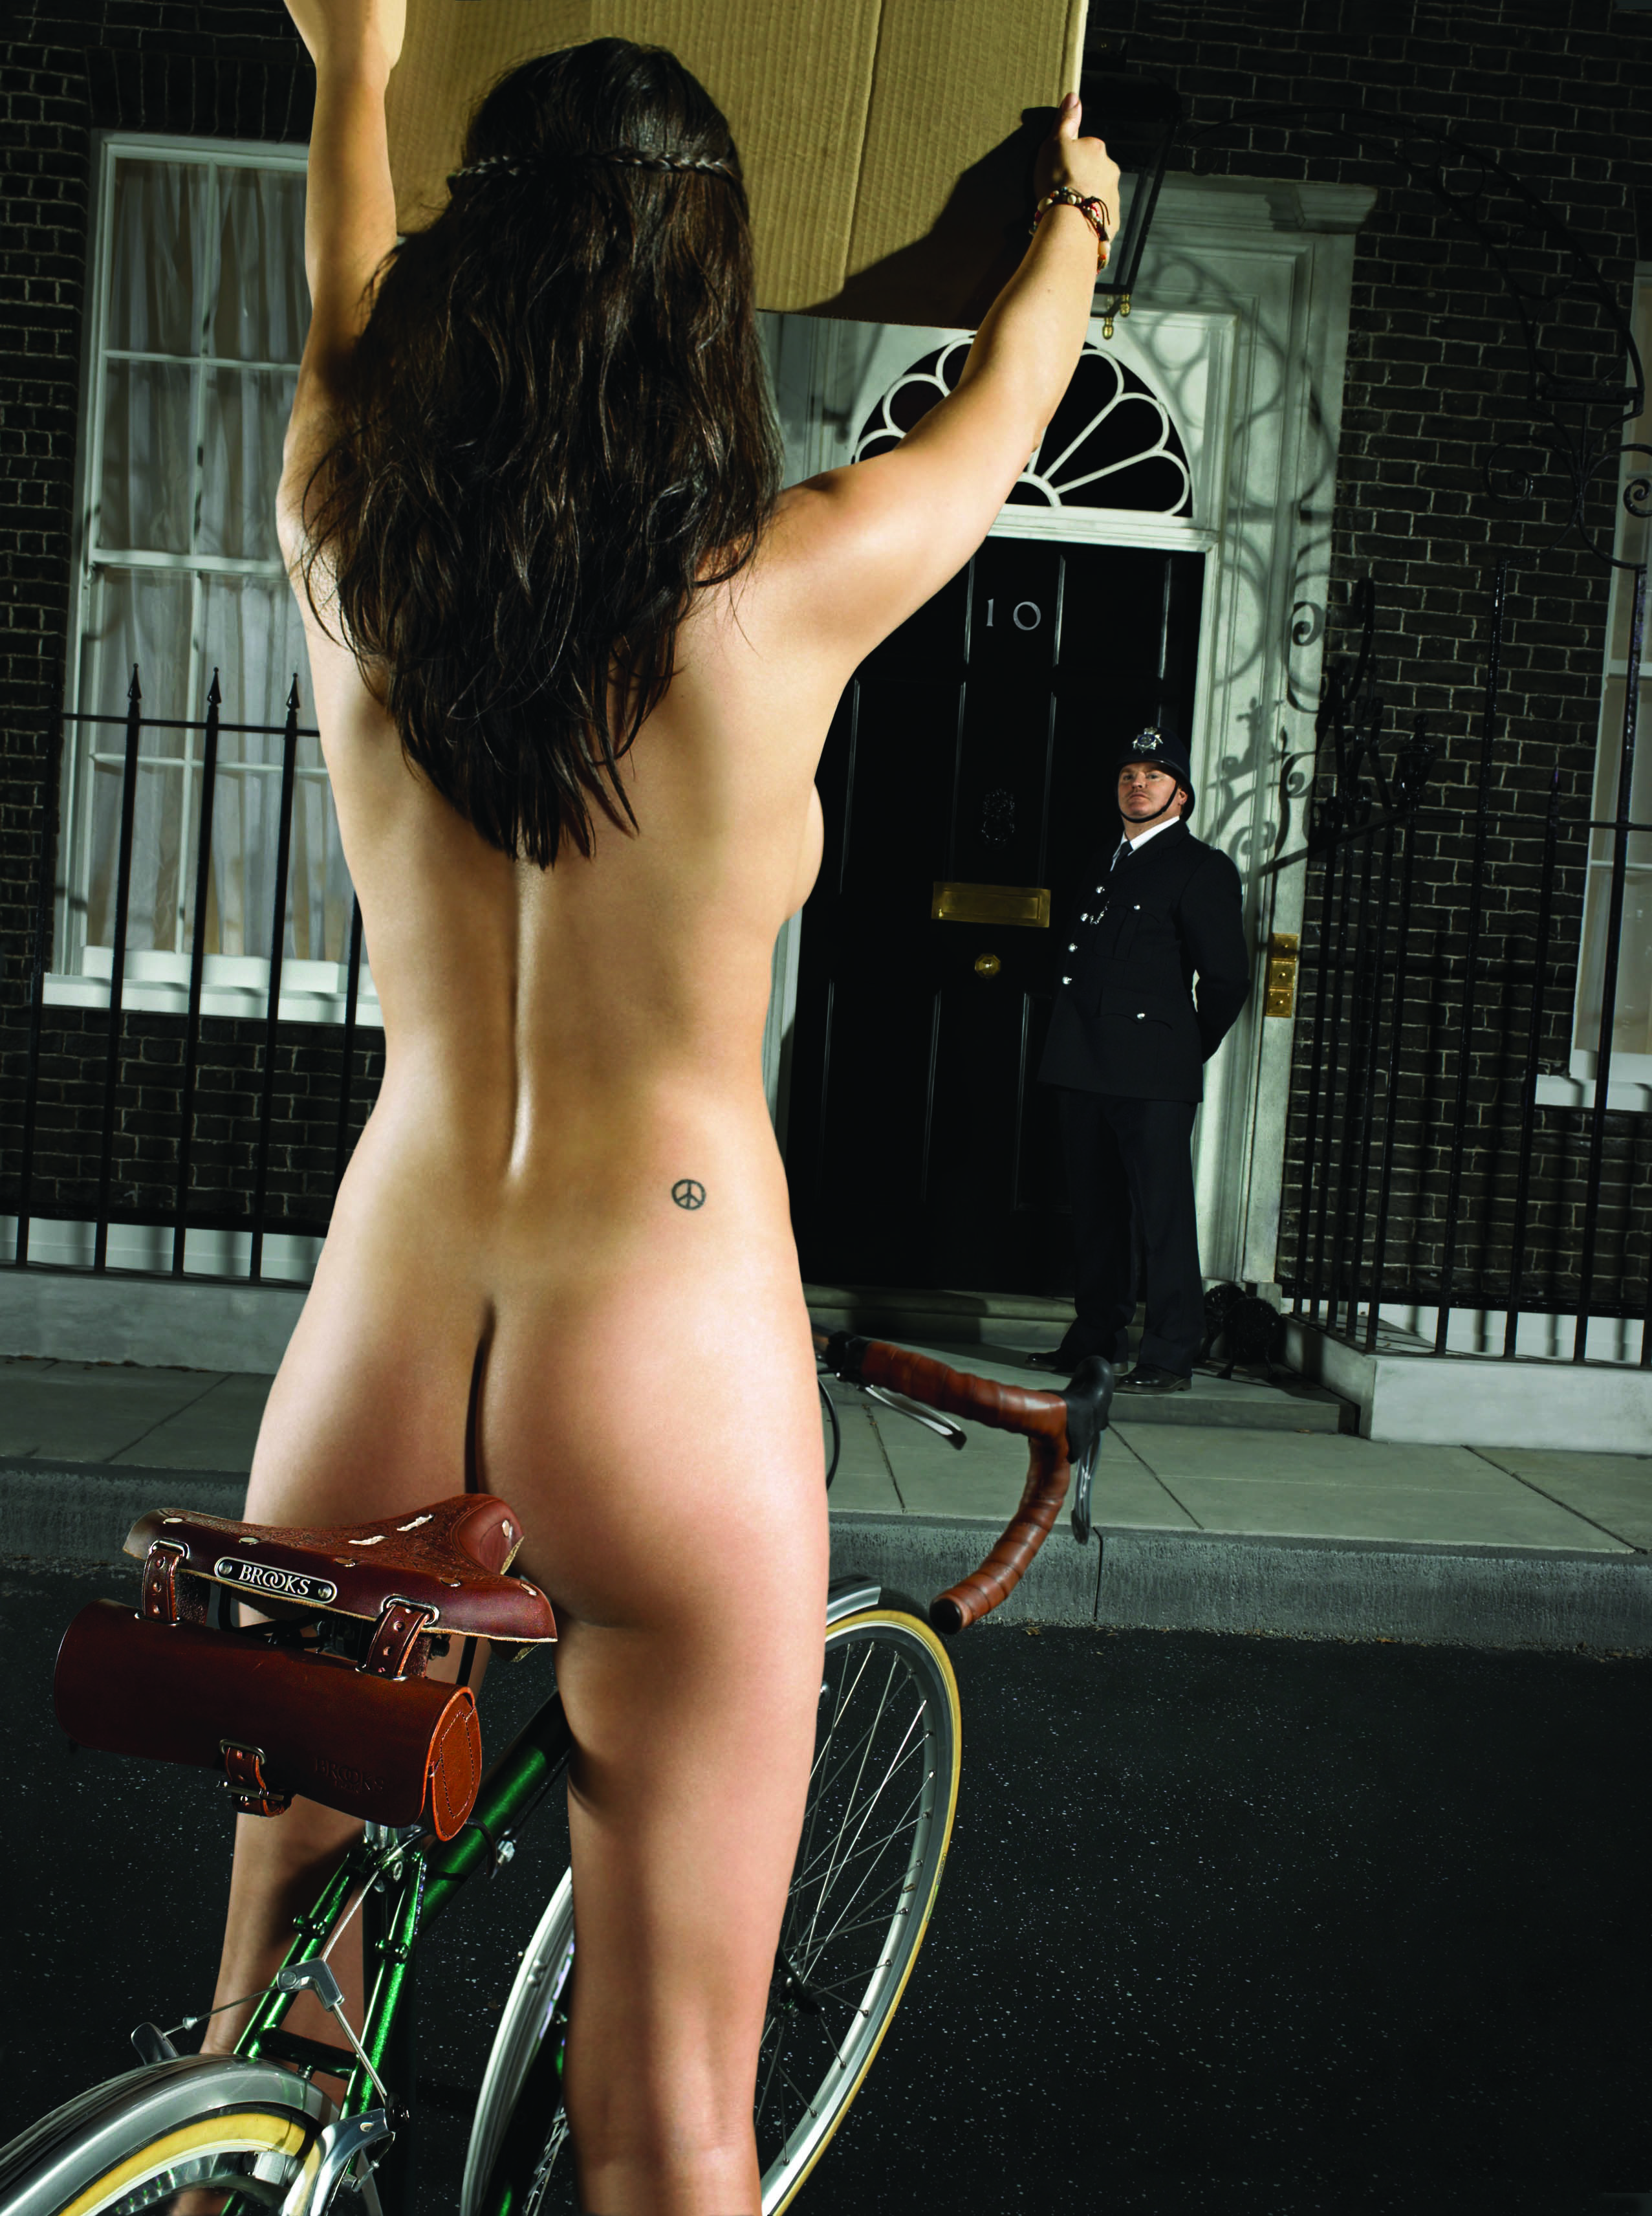 ebykr-brooks-made-in-downing-street-sexy-advertisement